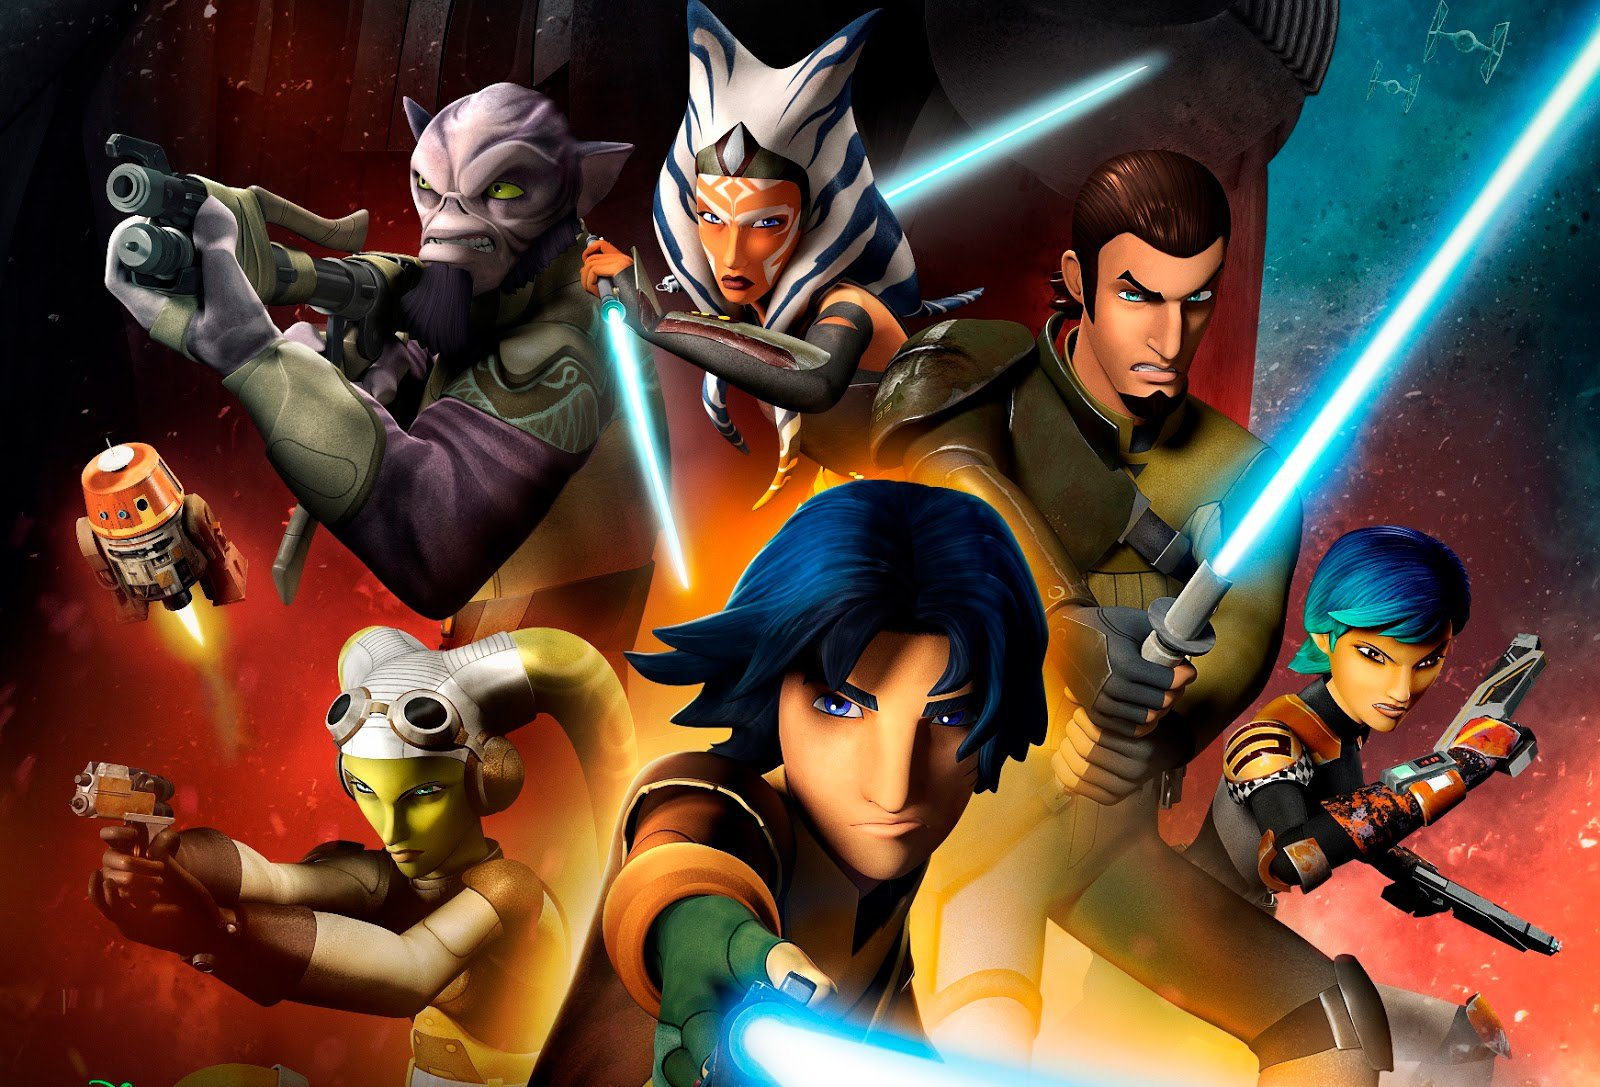 Star Wars Rebels Episode Names